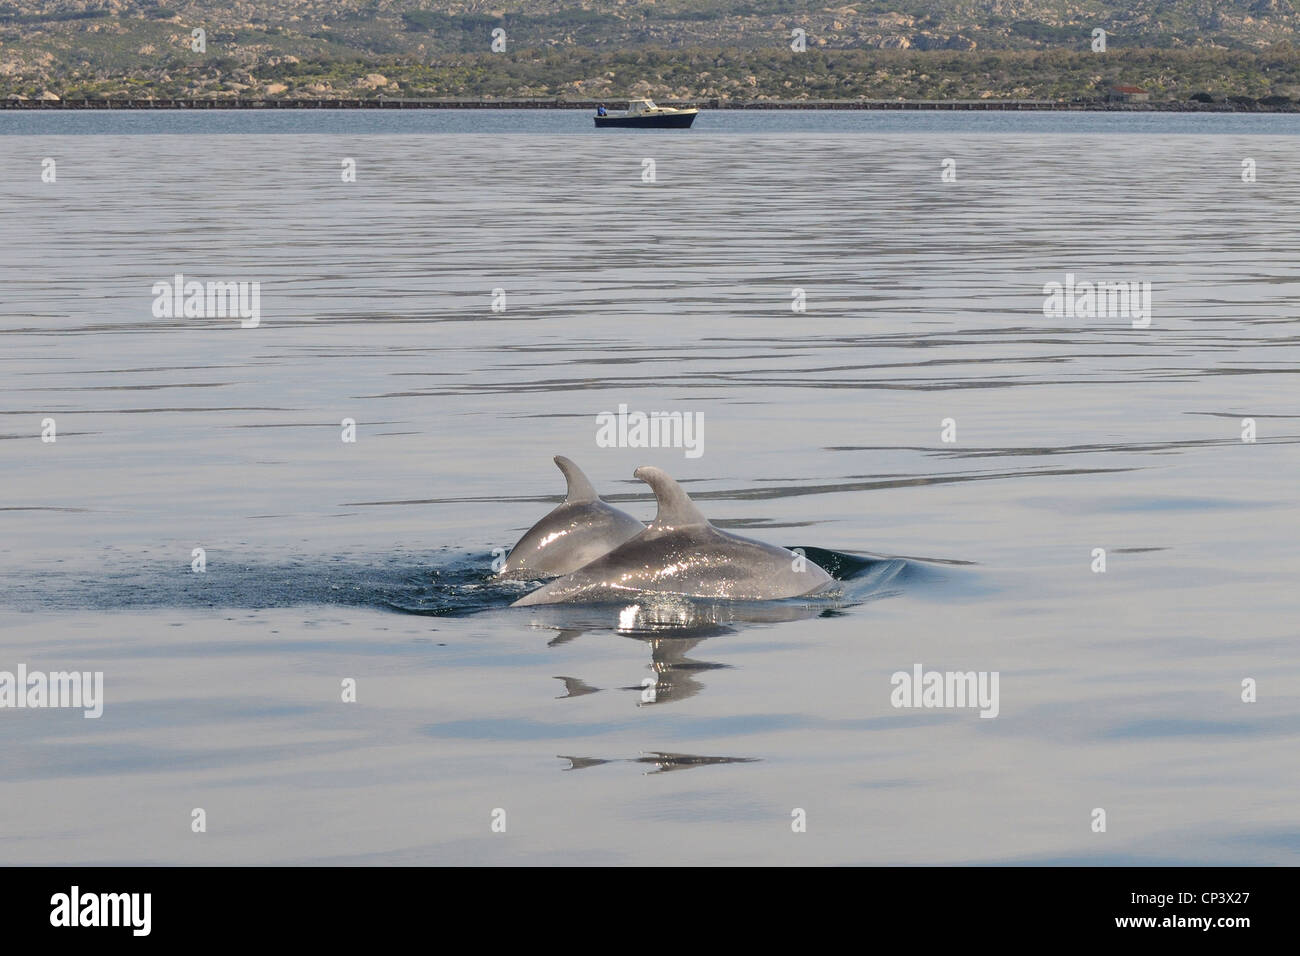 two common dolphin school around boat in the mediterranean off the sardinian coast interacting with each other, - Stock Image